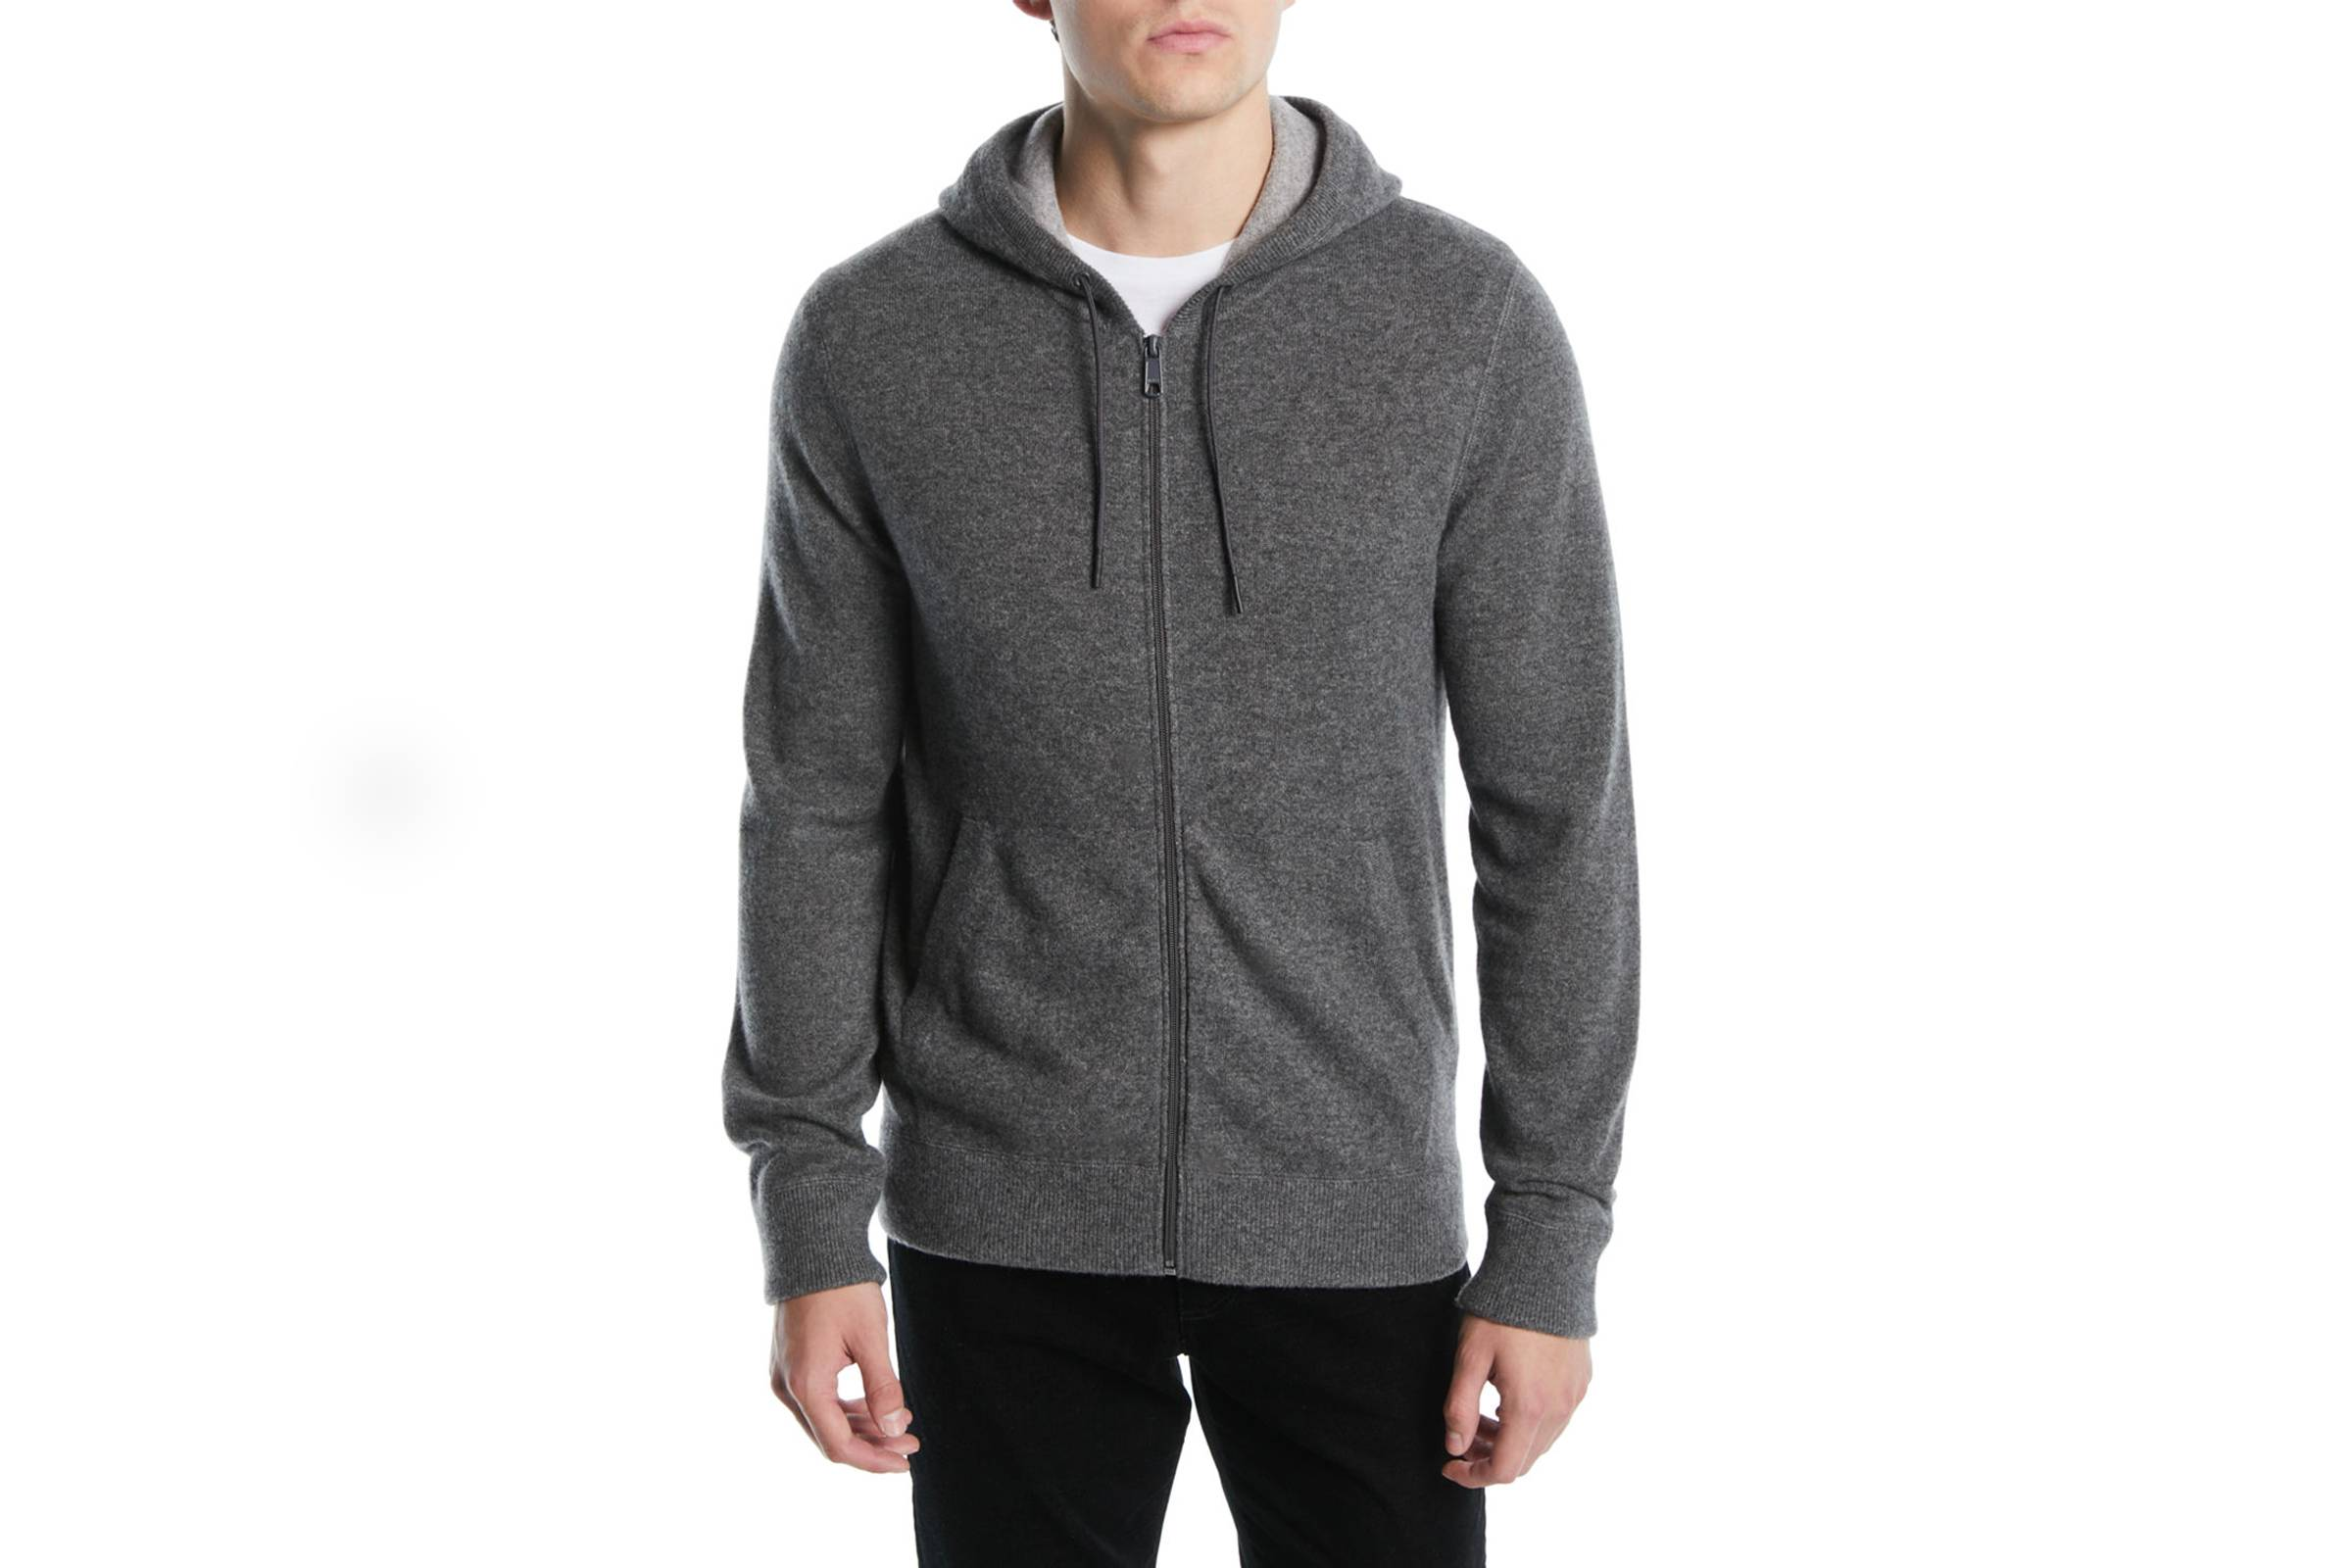 9. Vince Cashmere Hoodie